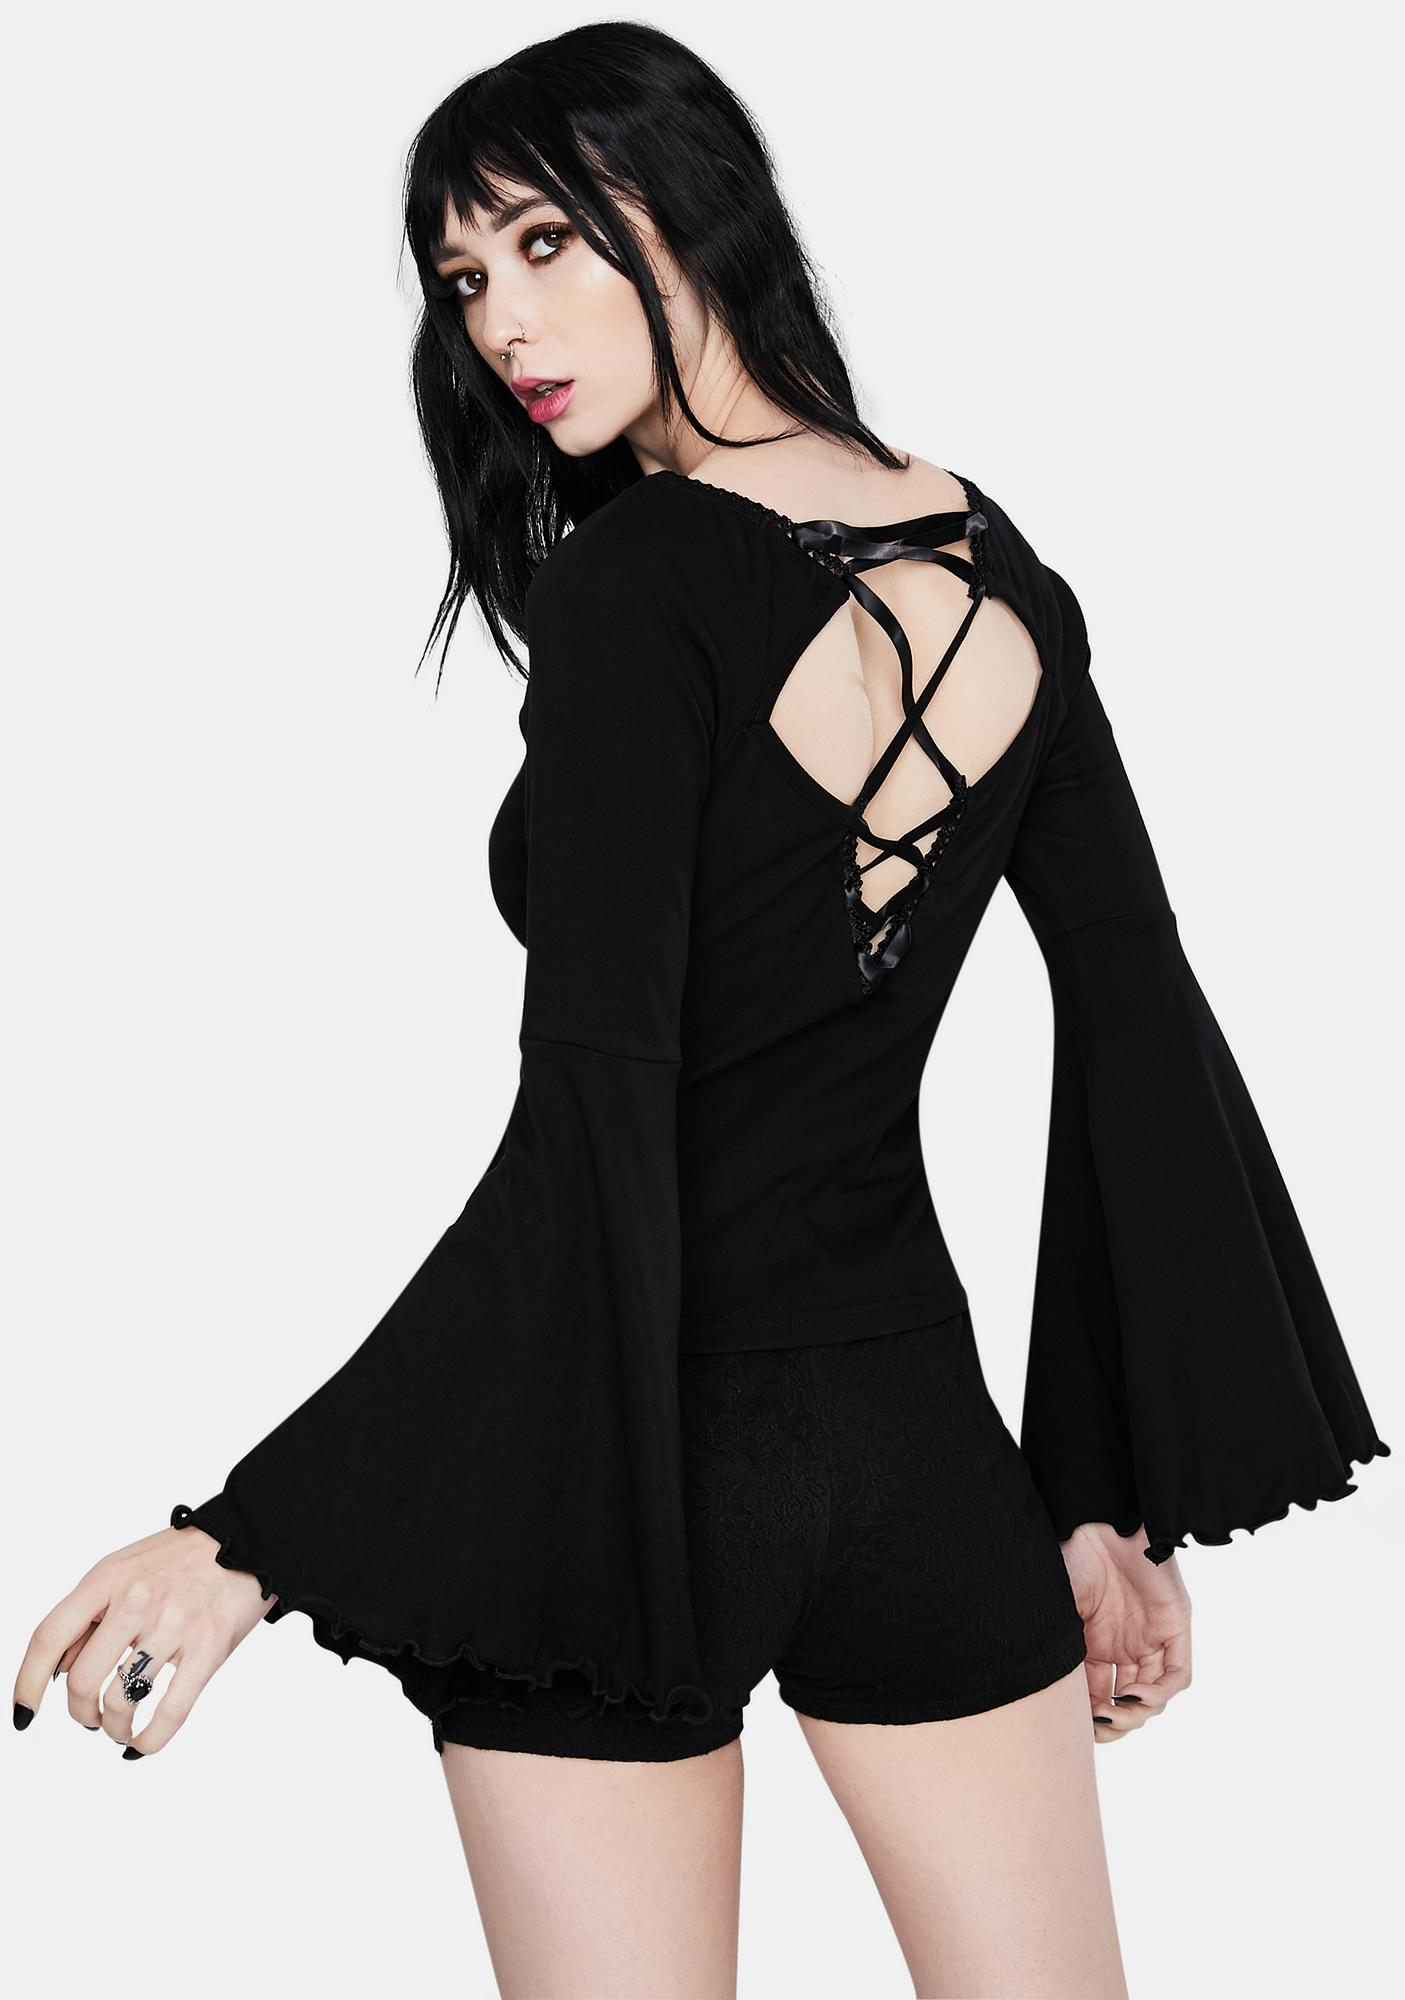 Dark In Love Three Hollow Bell Sleeves Shirt